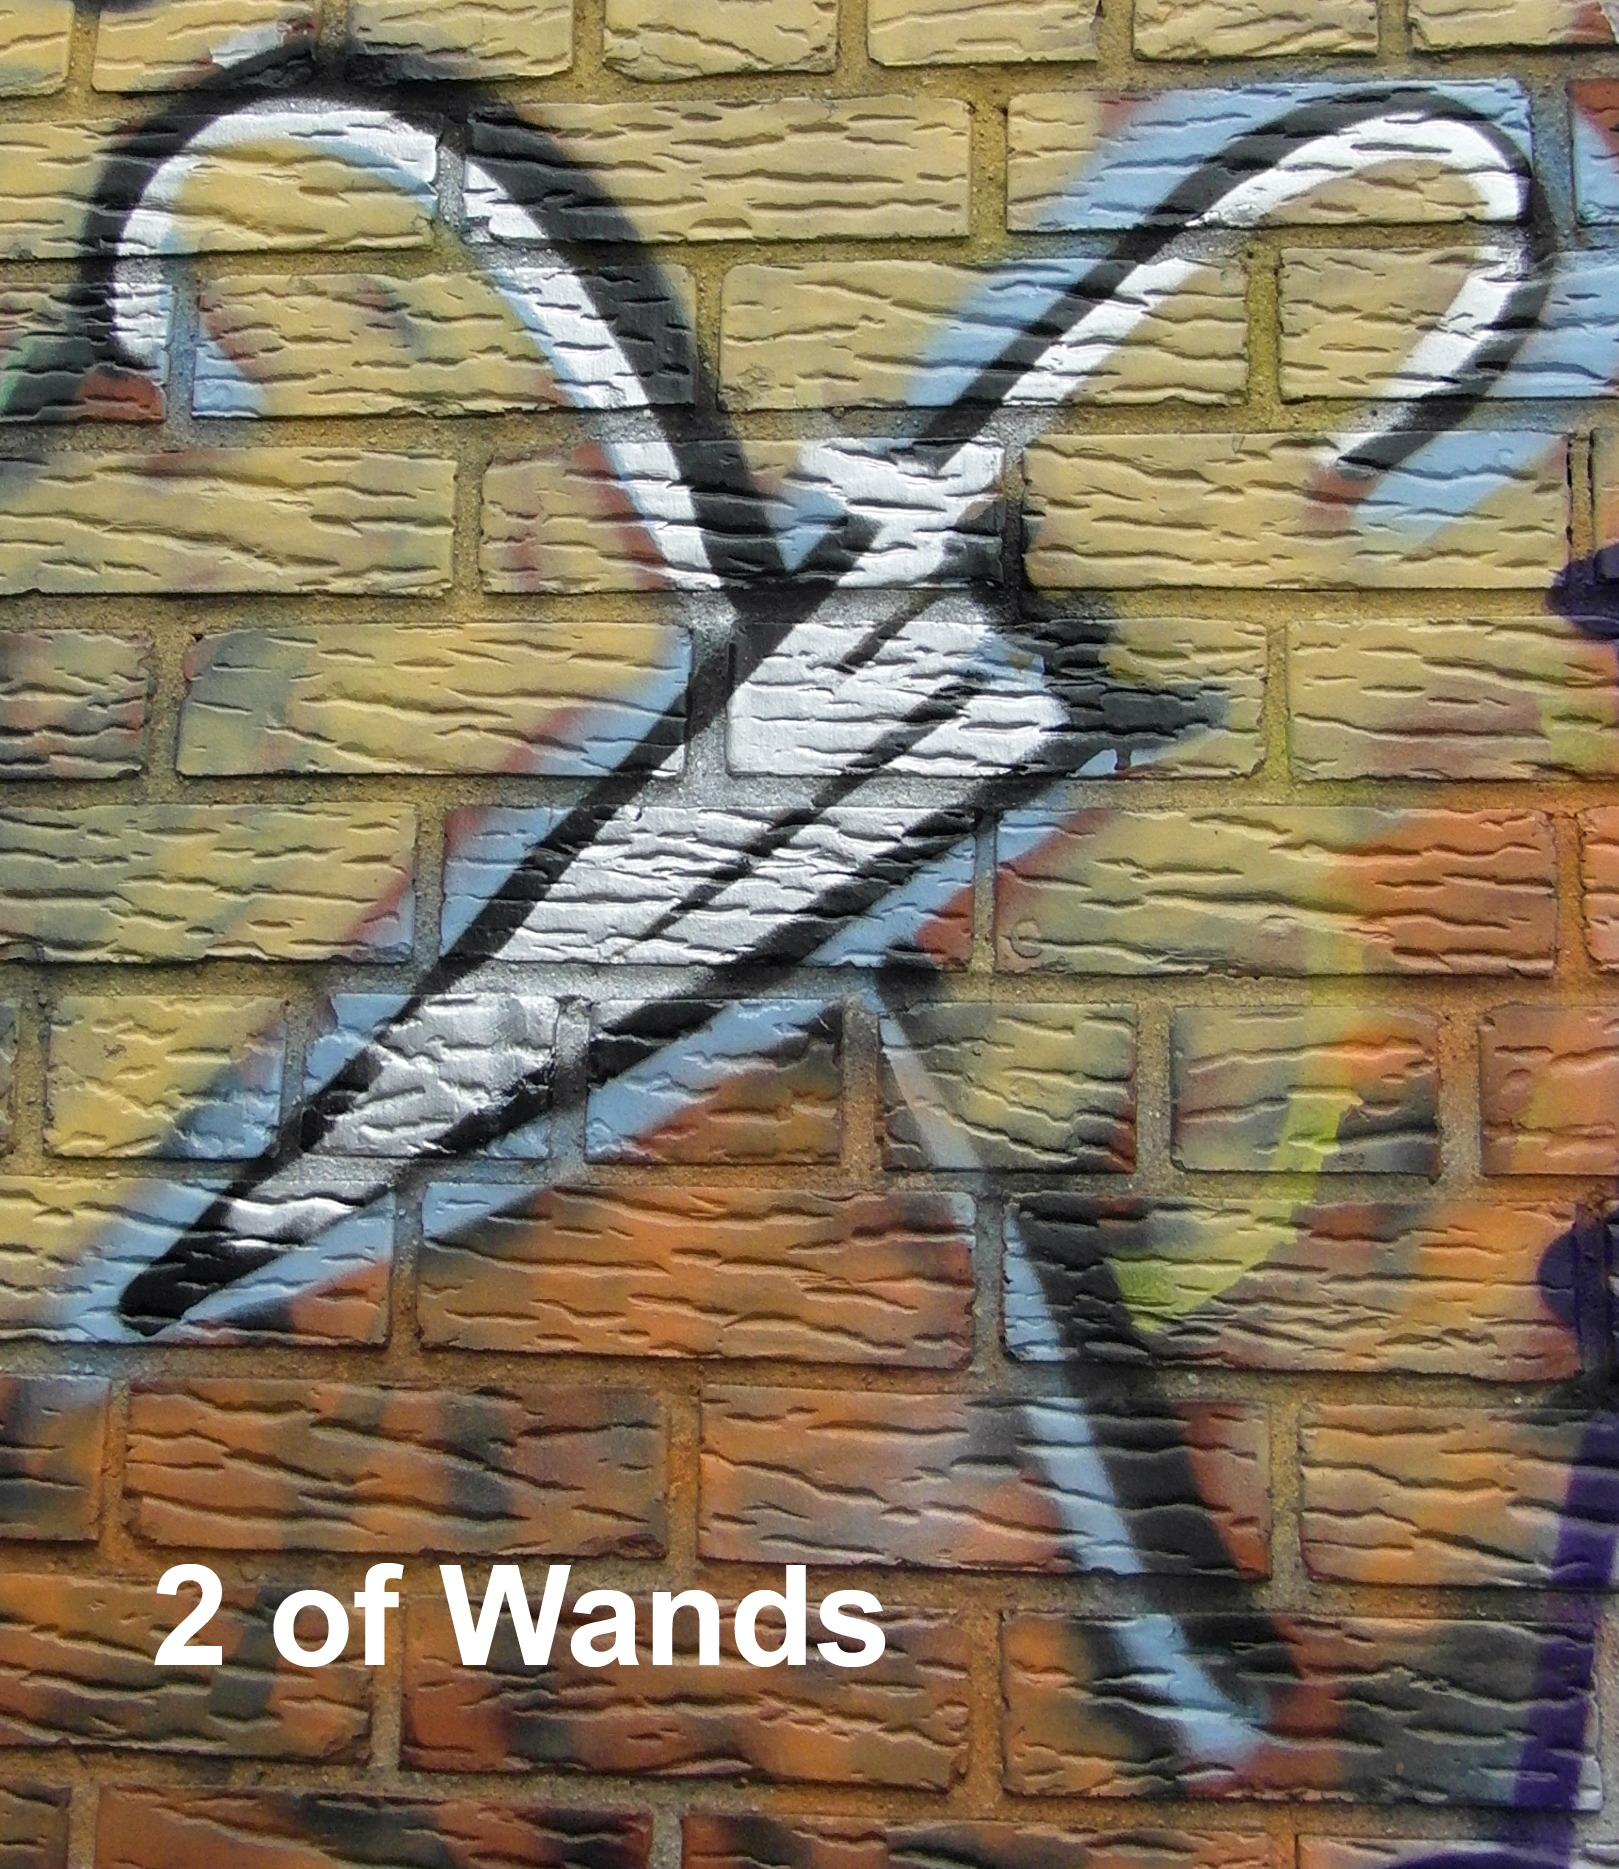 2 of Wands - Toronto Graffiti Tarot